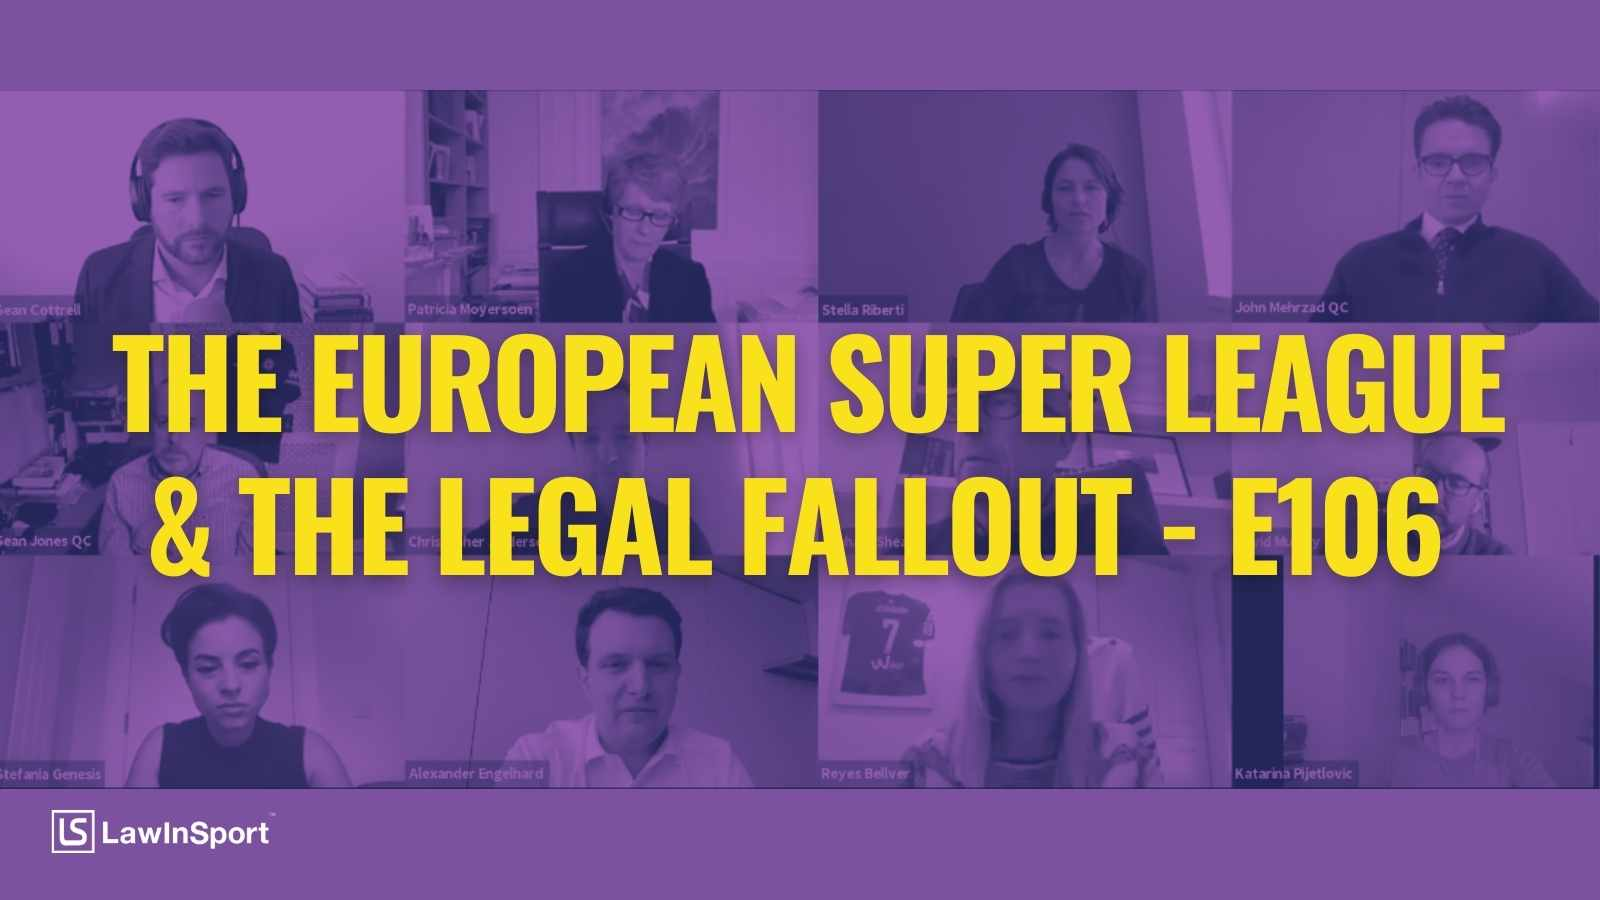 The European Super League & The Legal Fallout: Experts' Views - E106